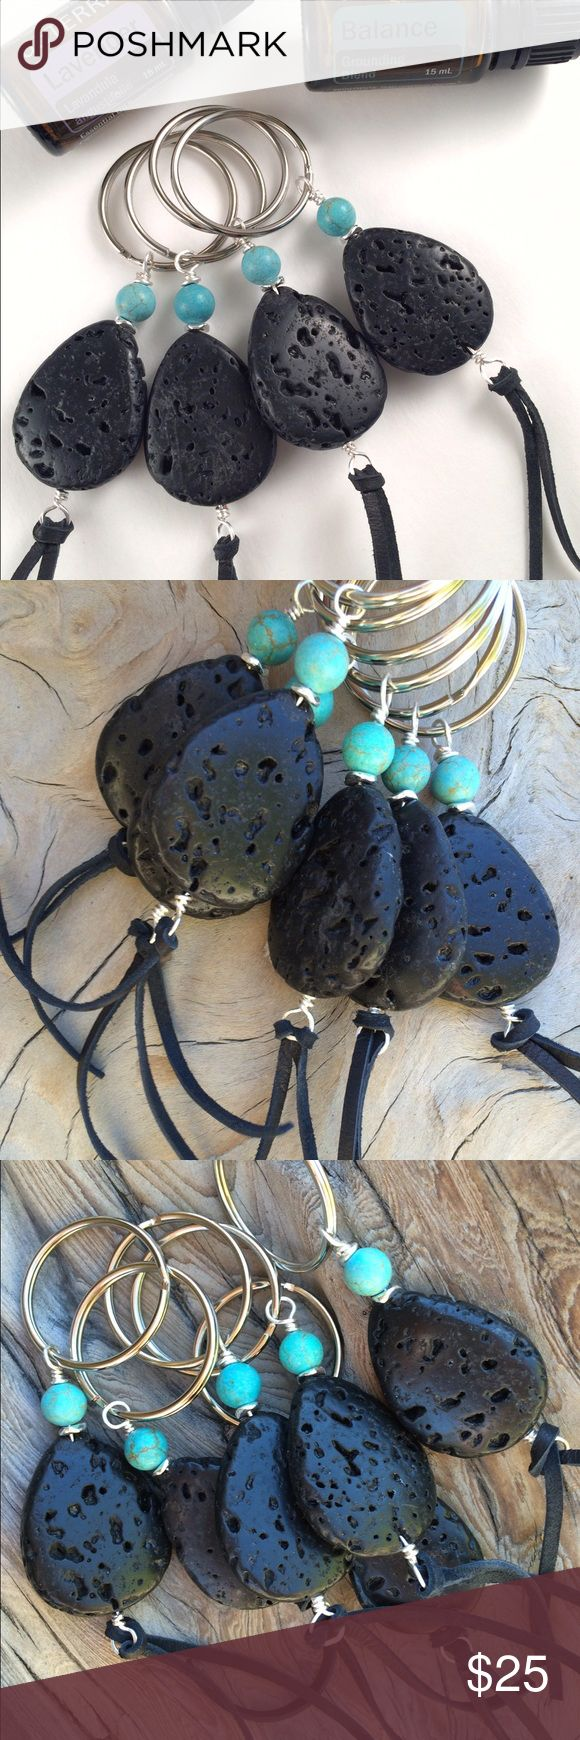 One Lava Stone Diffuser Keychain This listing is for one keychain. To diffuse, simply rub a couple drops of your favorite essential oil into the lava/leather. Makes a great gift for anyone who loves essential oils! Quinn Sharp Designs  Accessories Key & Card Holders